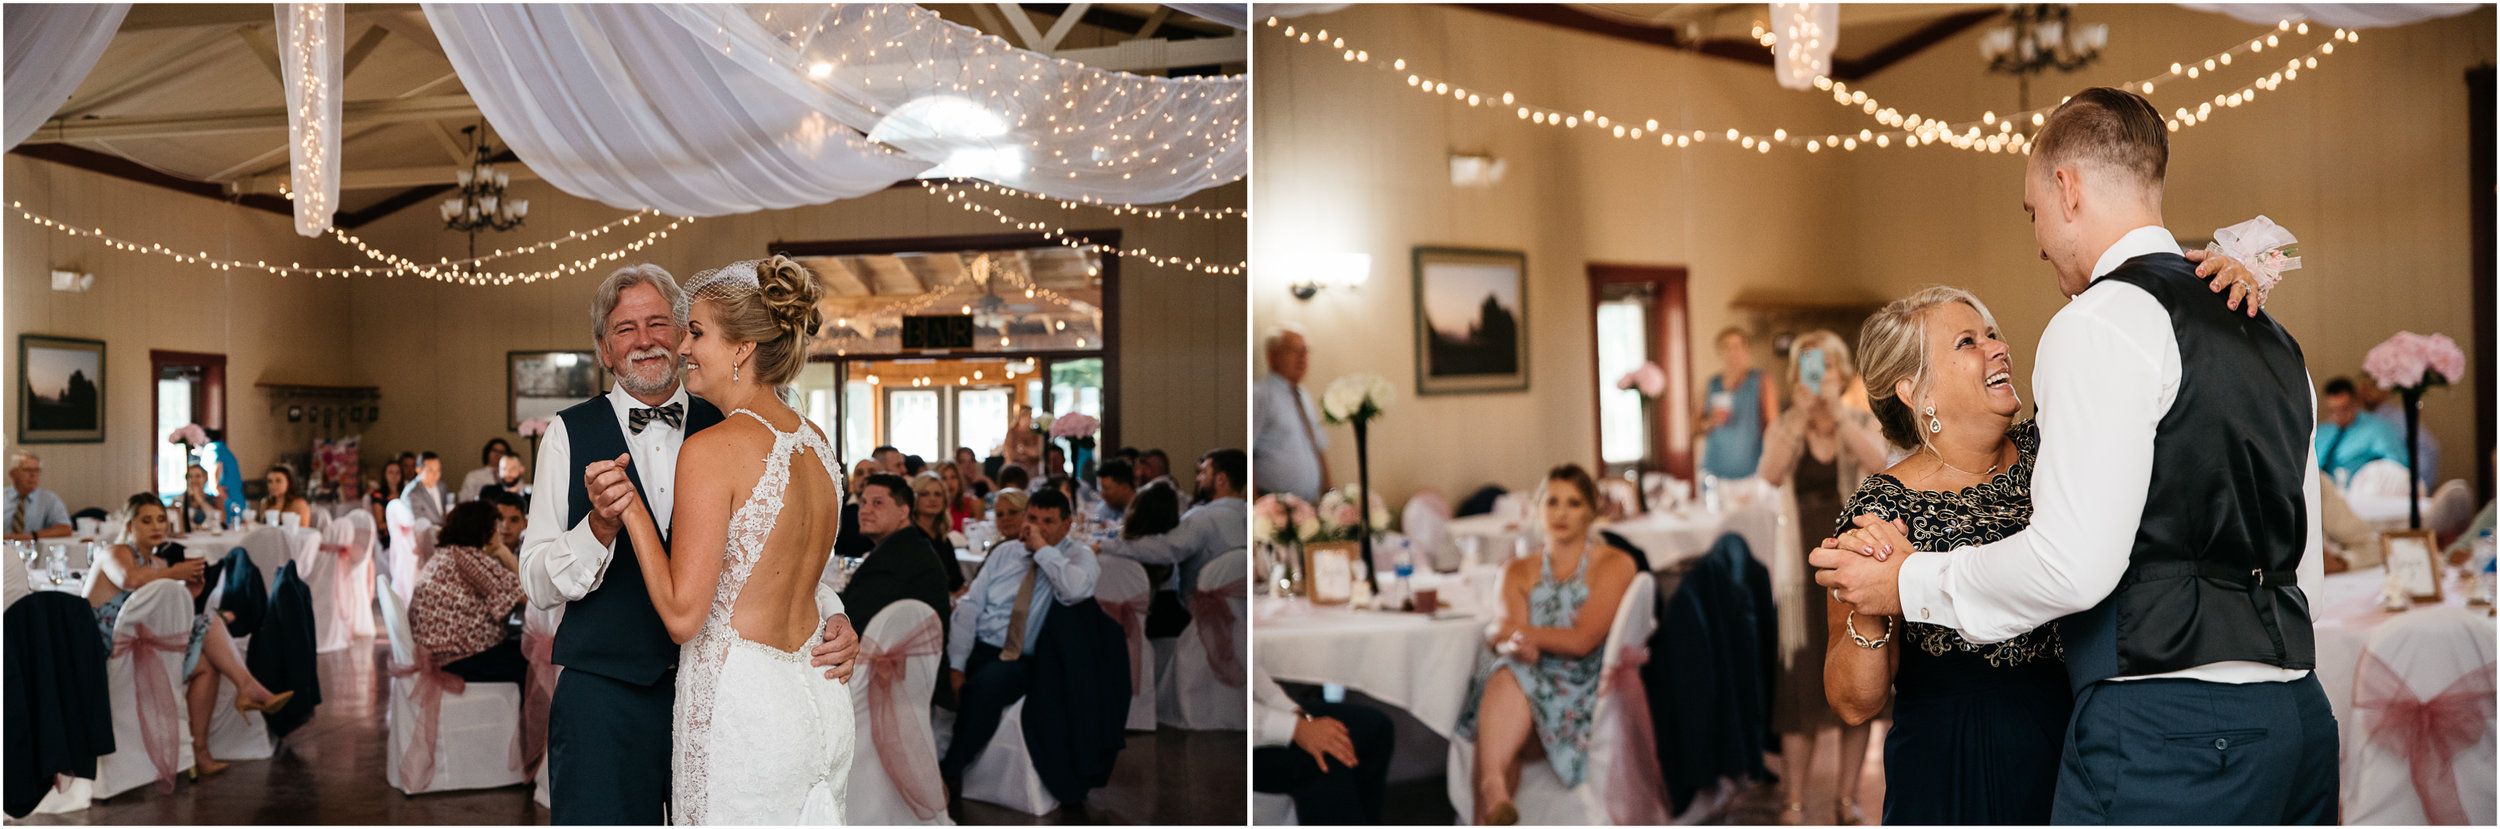 Father Daughter Dance Foggy Mountain Stahlstown Wedding.jpg